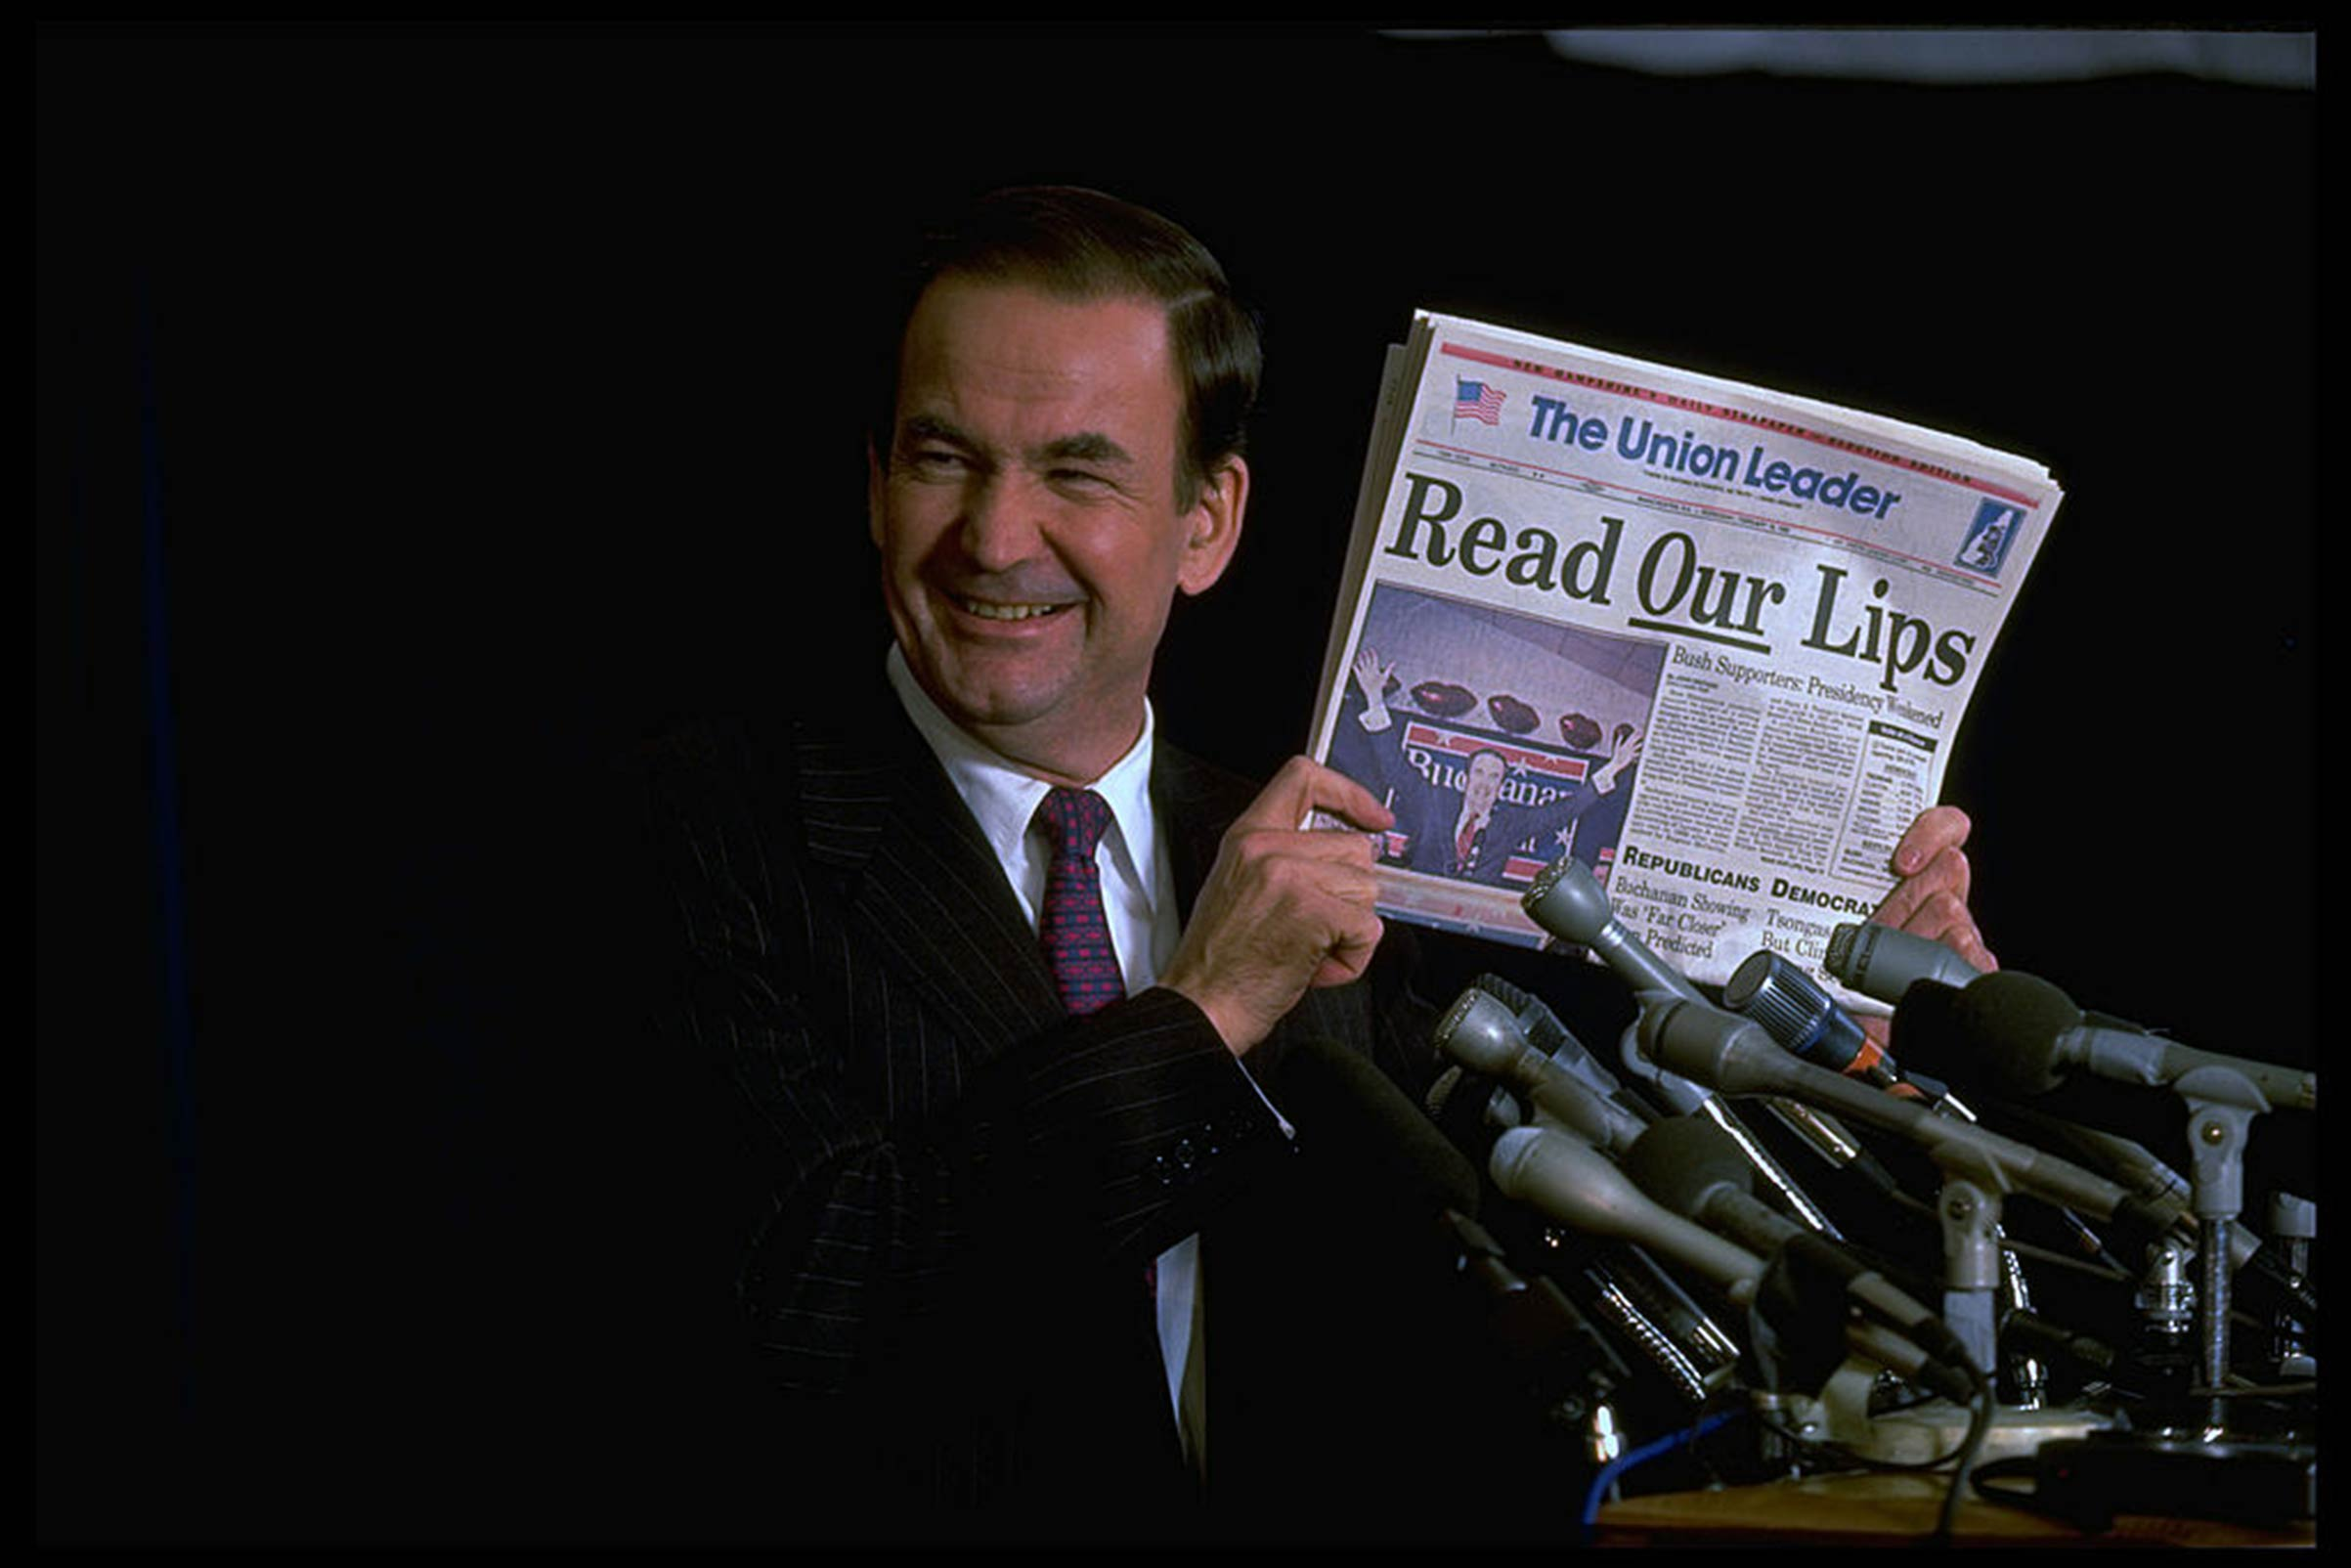 Conservative Republican presidential hopeful Pat Buchanan displaying The New Hampshire Union Leader headlining his triumph and threat to frontrunner and incumbent President George H.W. Bush on Feb. 1, 1992.